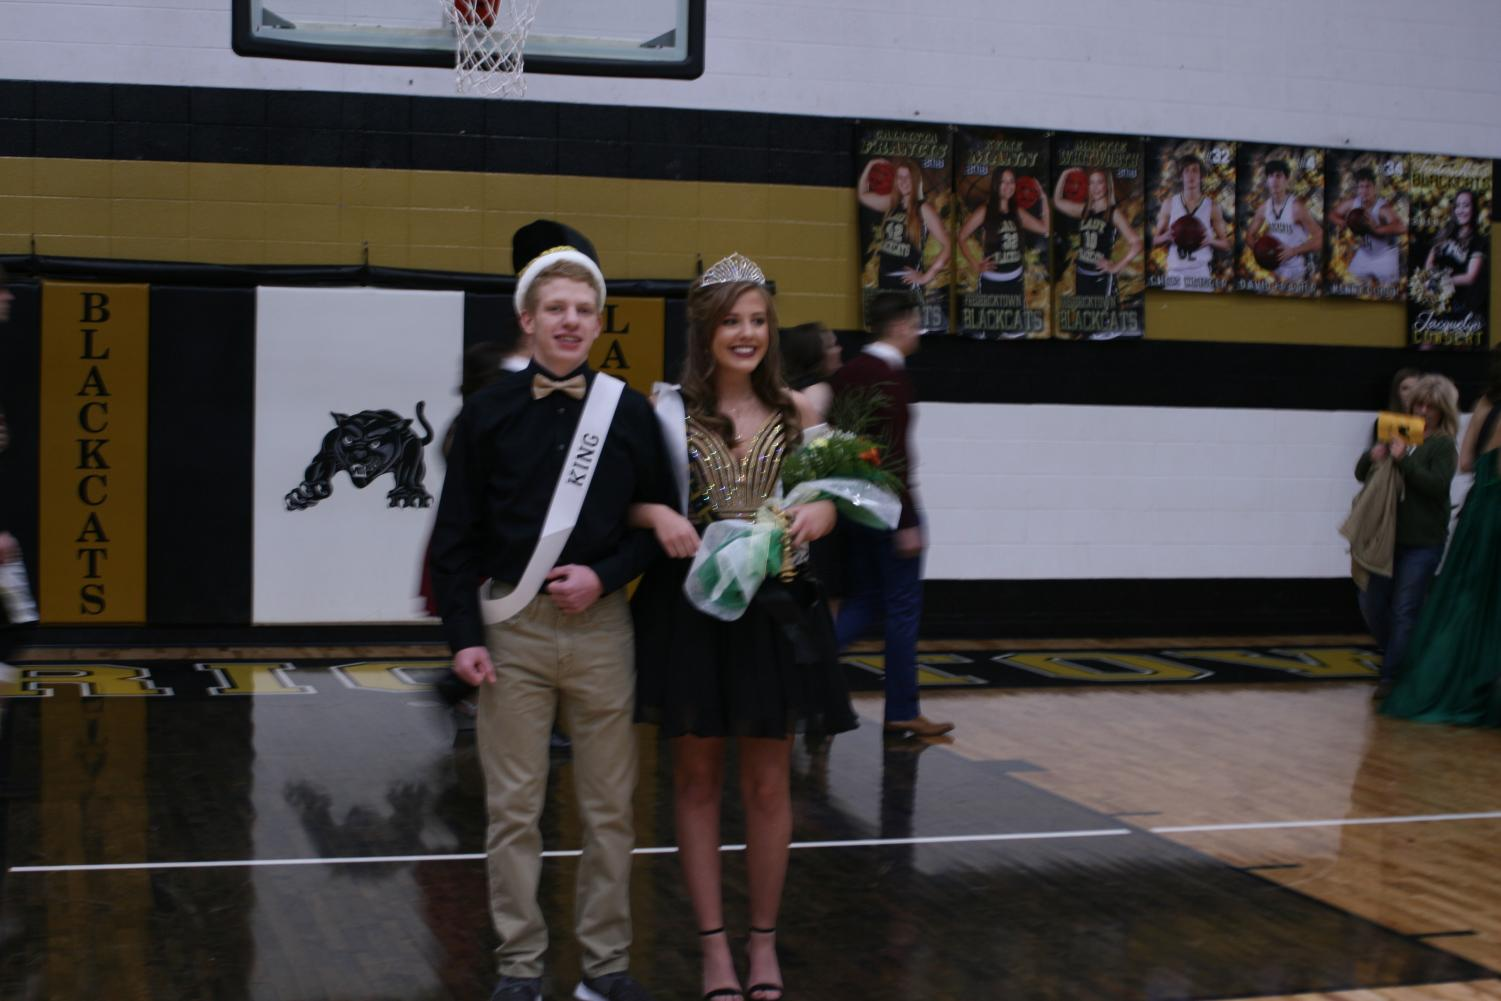 Homecoming king and queen Kaden Lee and Gracie Flanagan